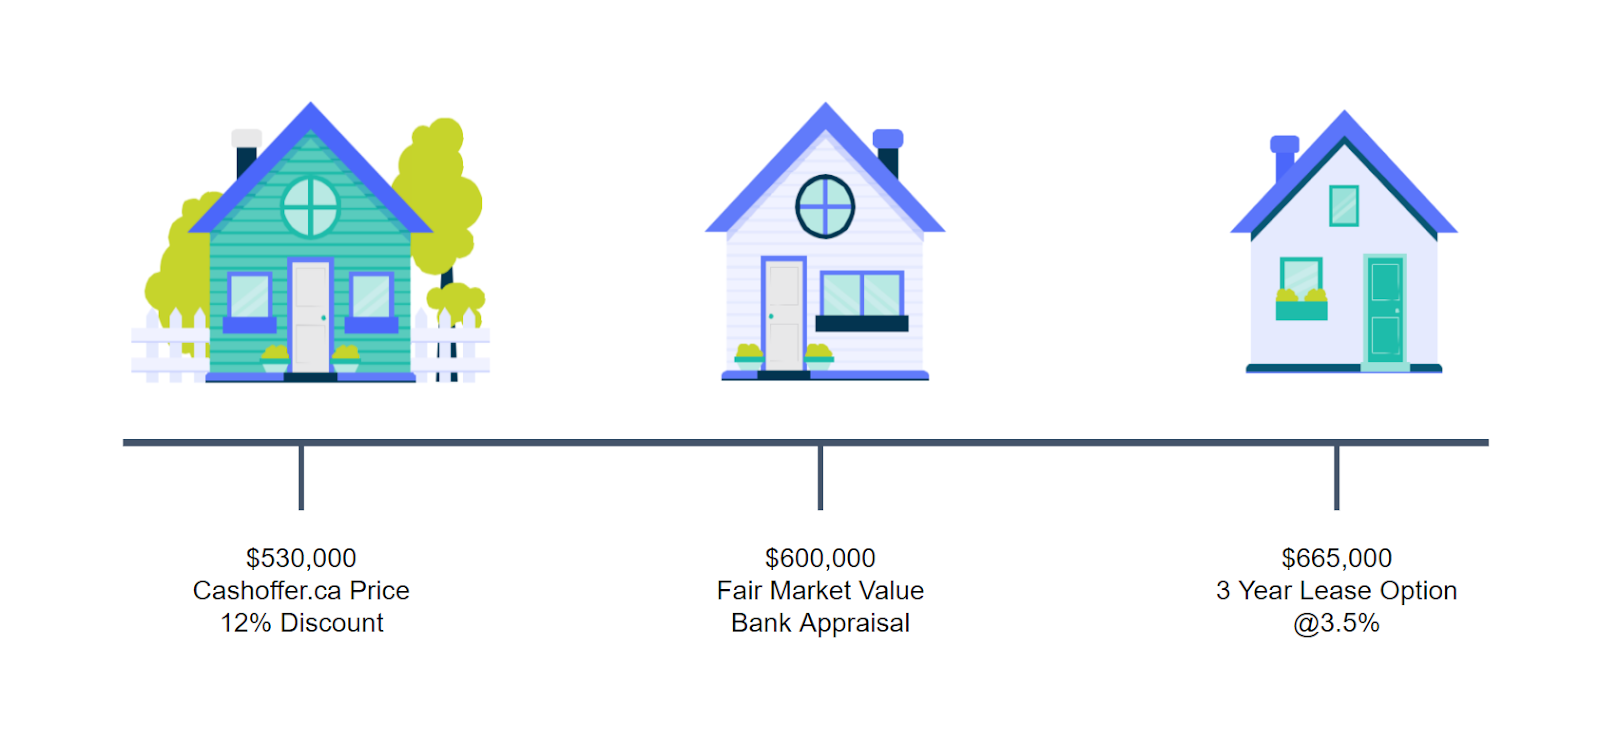 Illustration of houses with comparison prices, outlining Cash Offer Canada's investment return potential